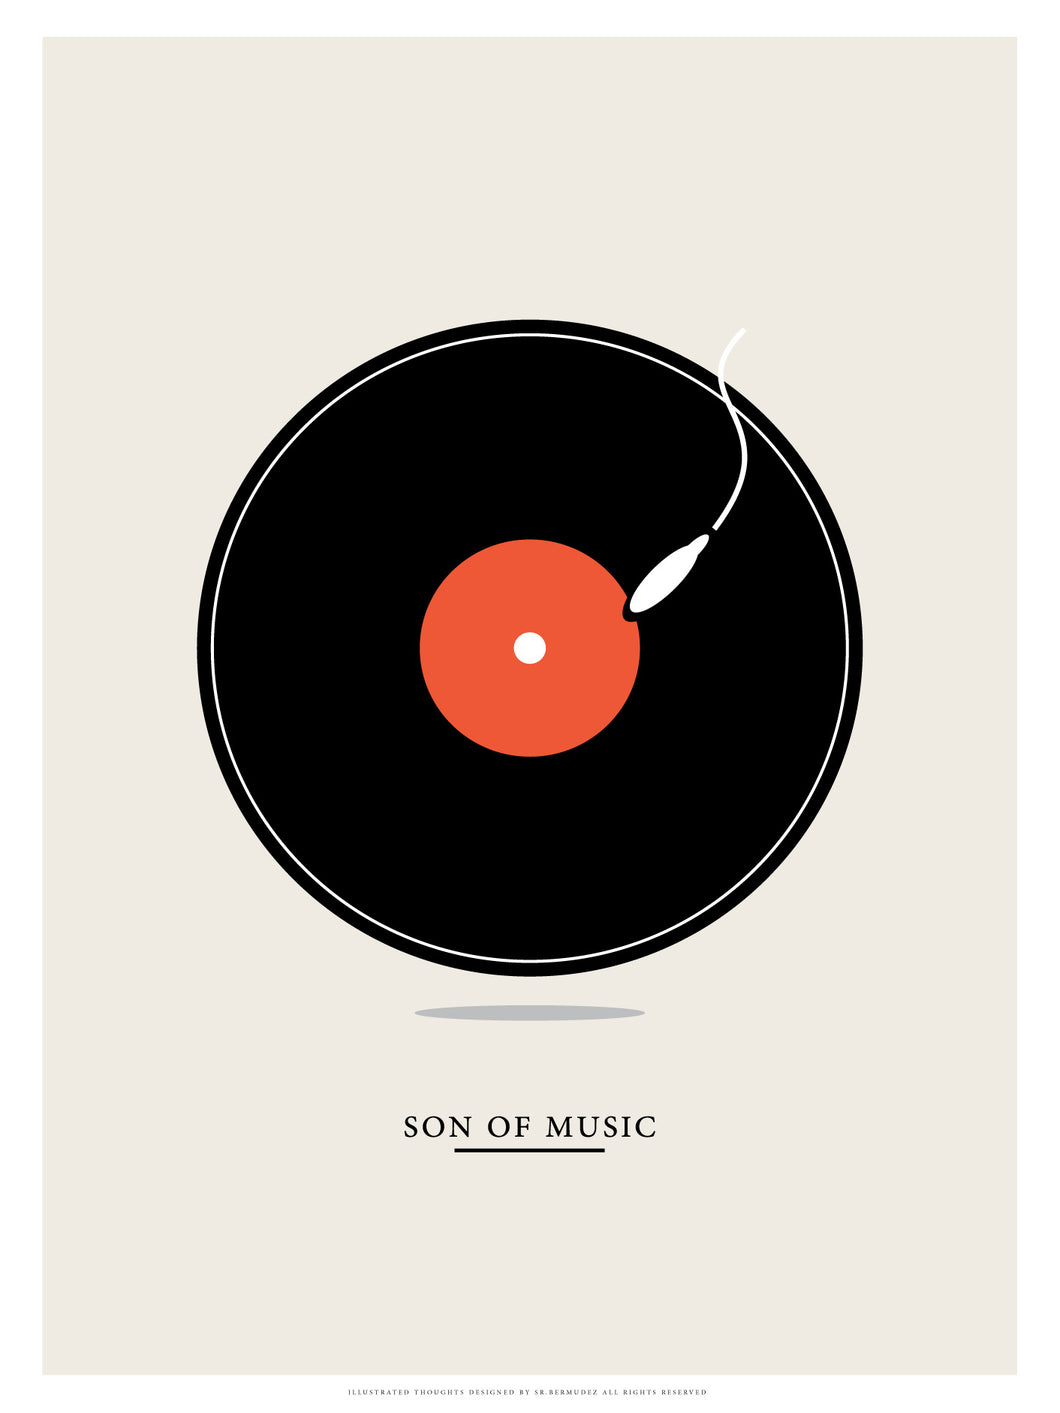 Son of Music